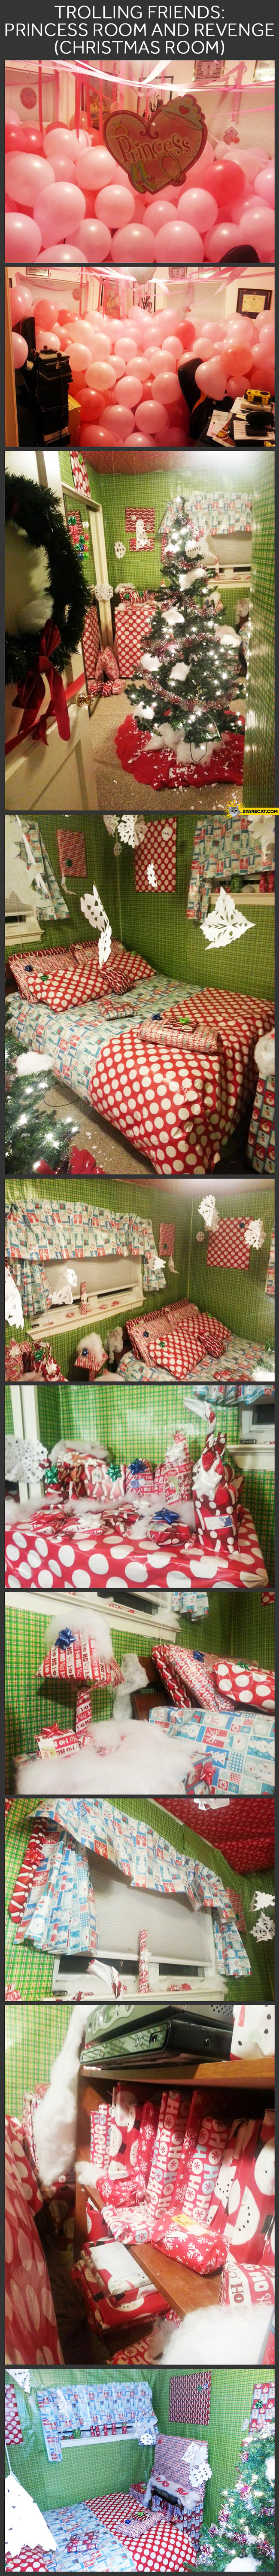 Trolling balloons in room everything wrapped Christmas